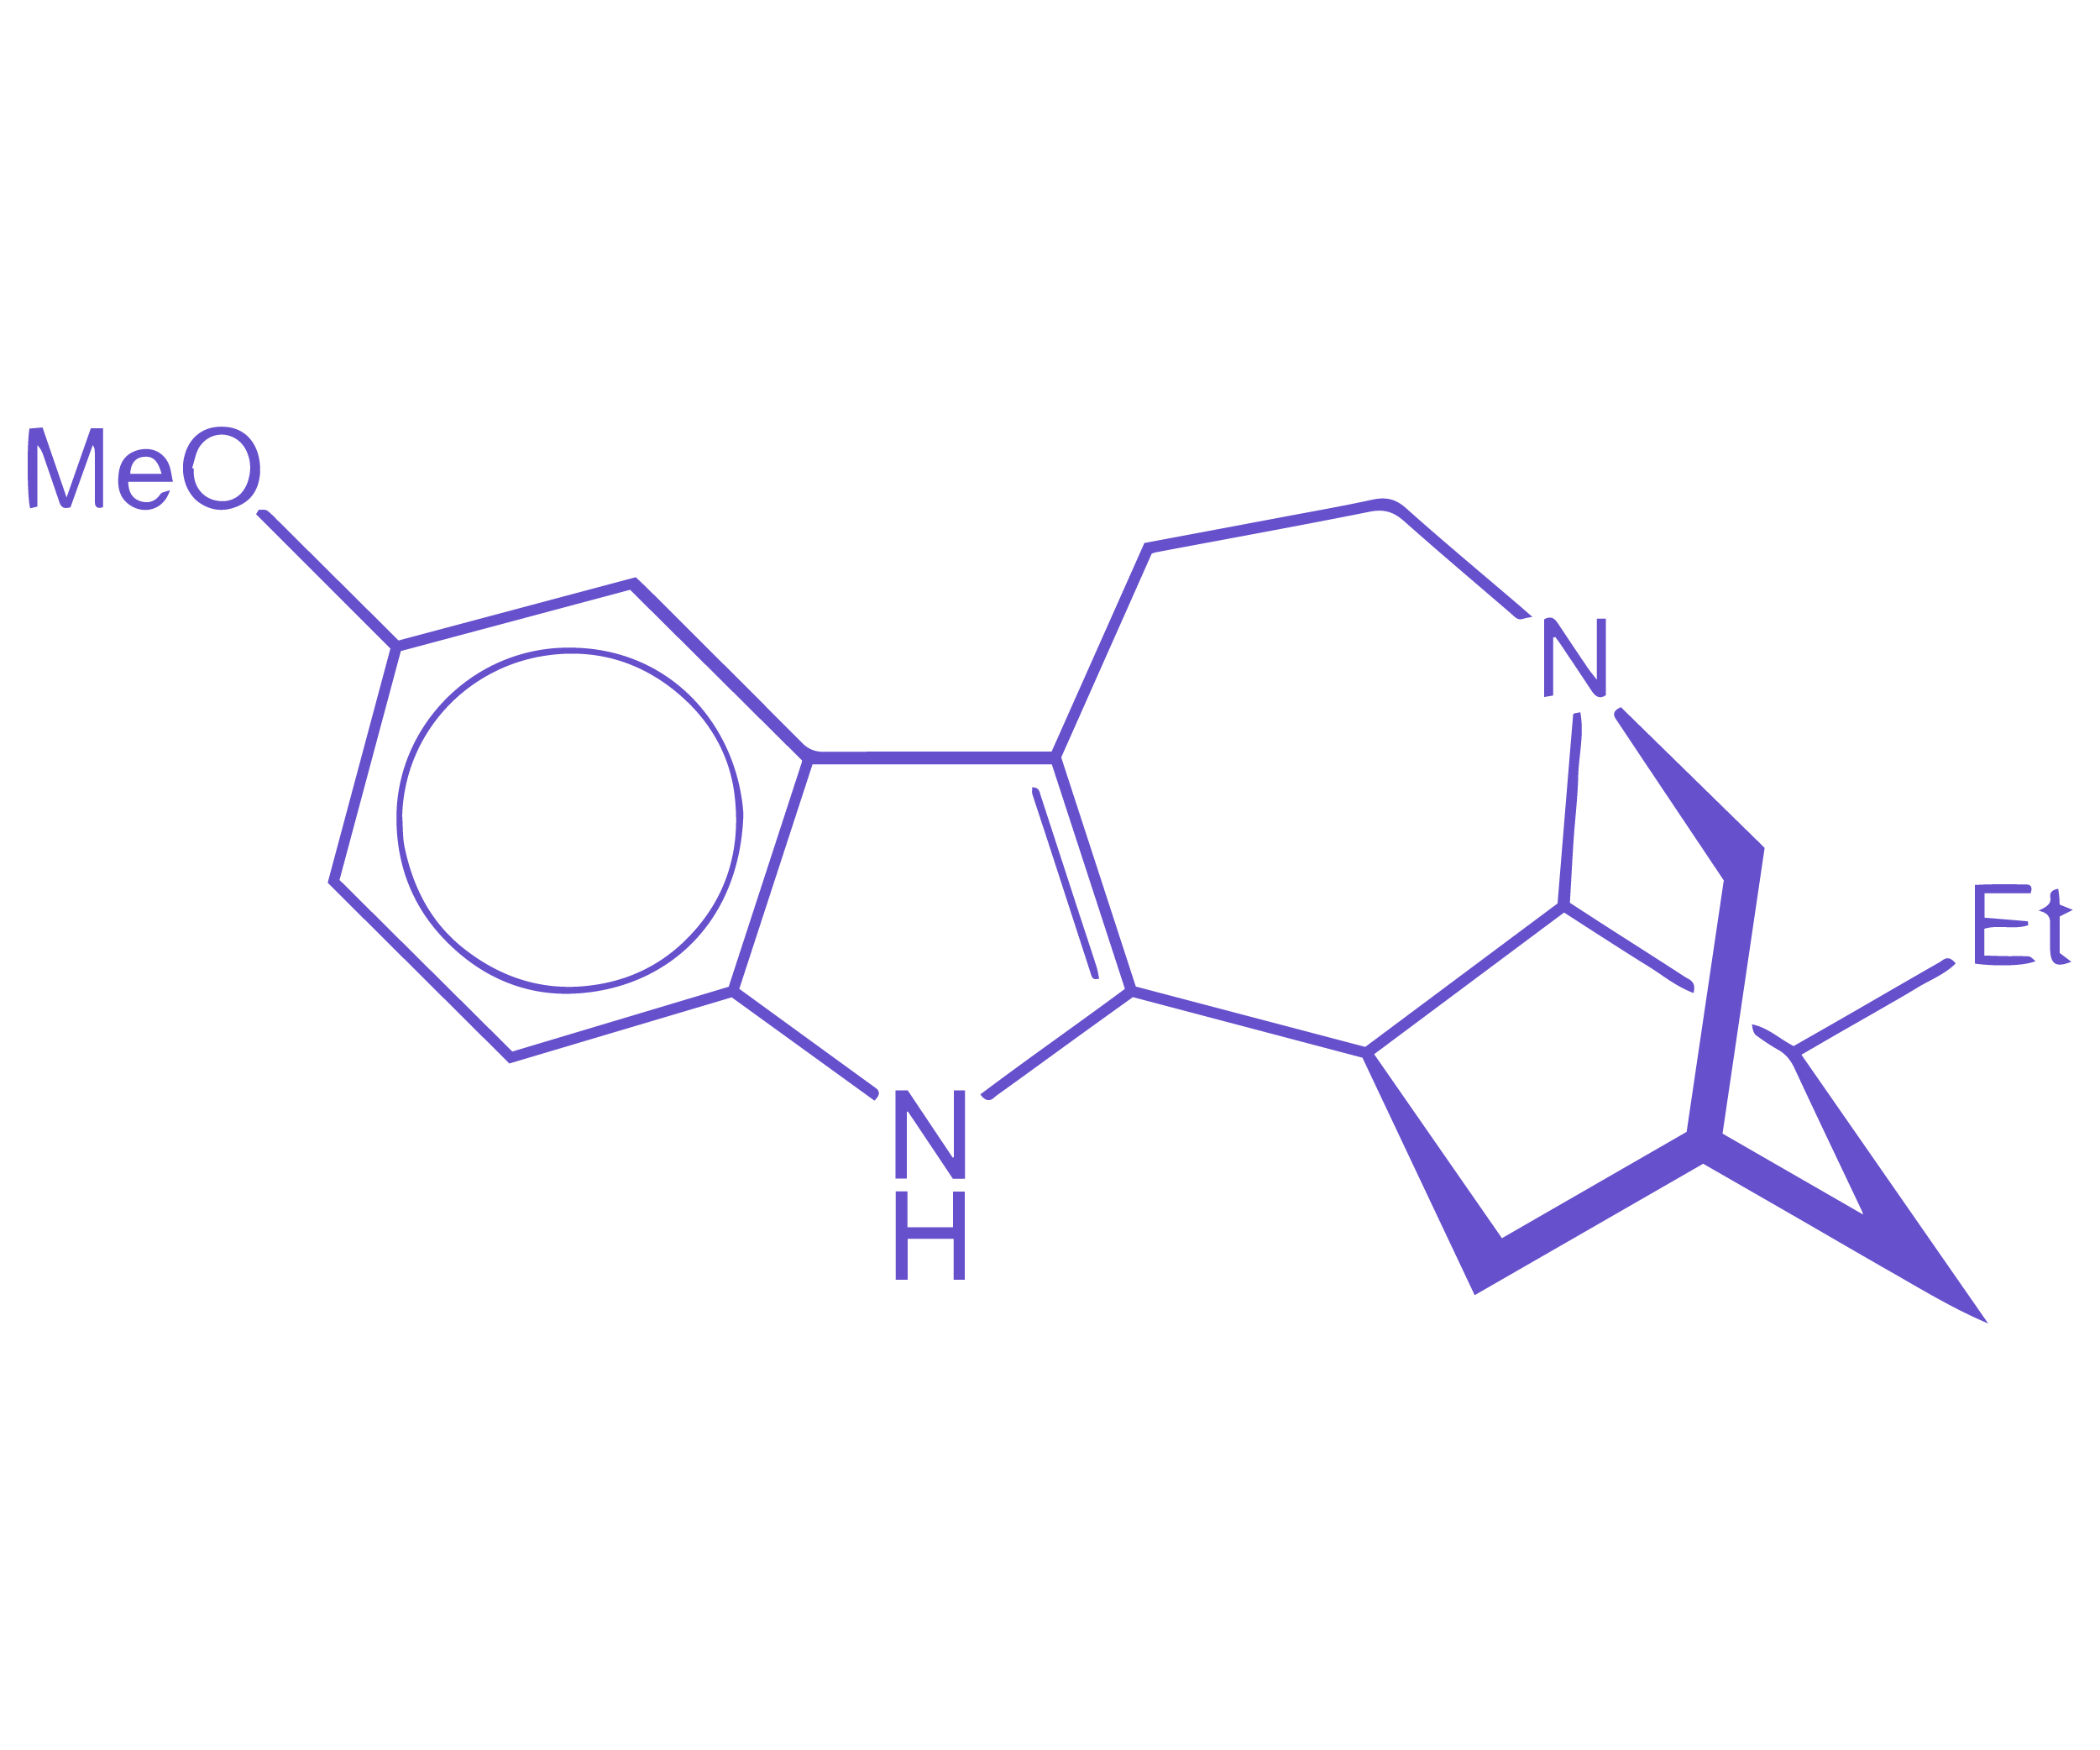 Ibogaine, a naturally occurring alkaloid found in the root bark of plants in the Apocynaceae family, has traditionally been used as medicine and a ritual tool in the Bwiti religion in Gabon, Africa.